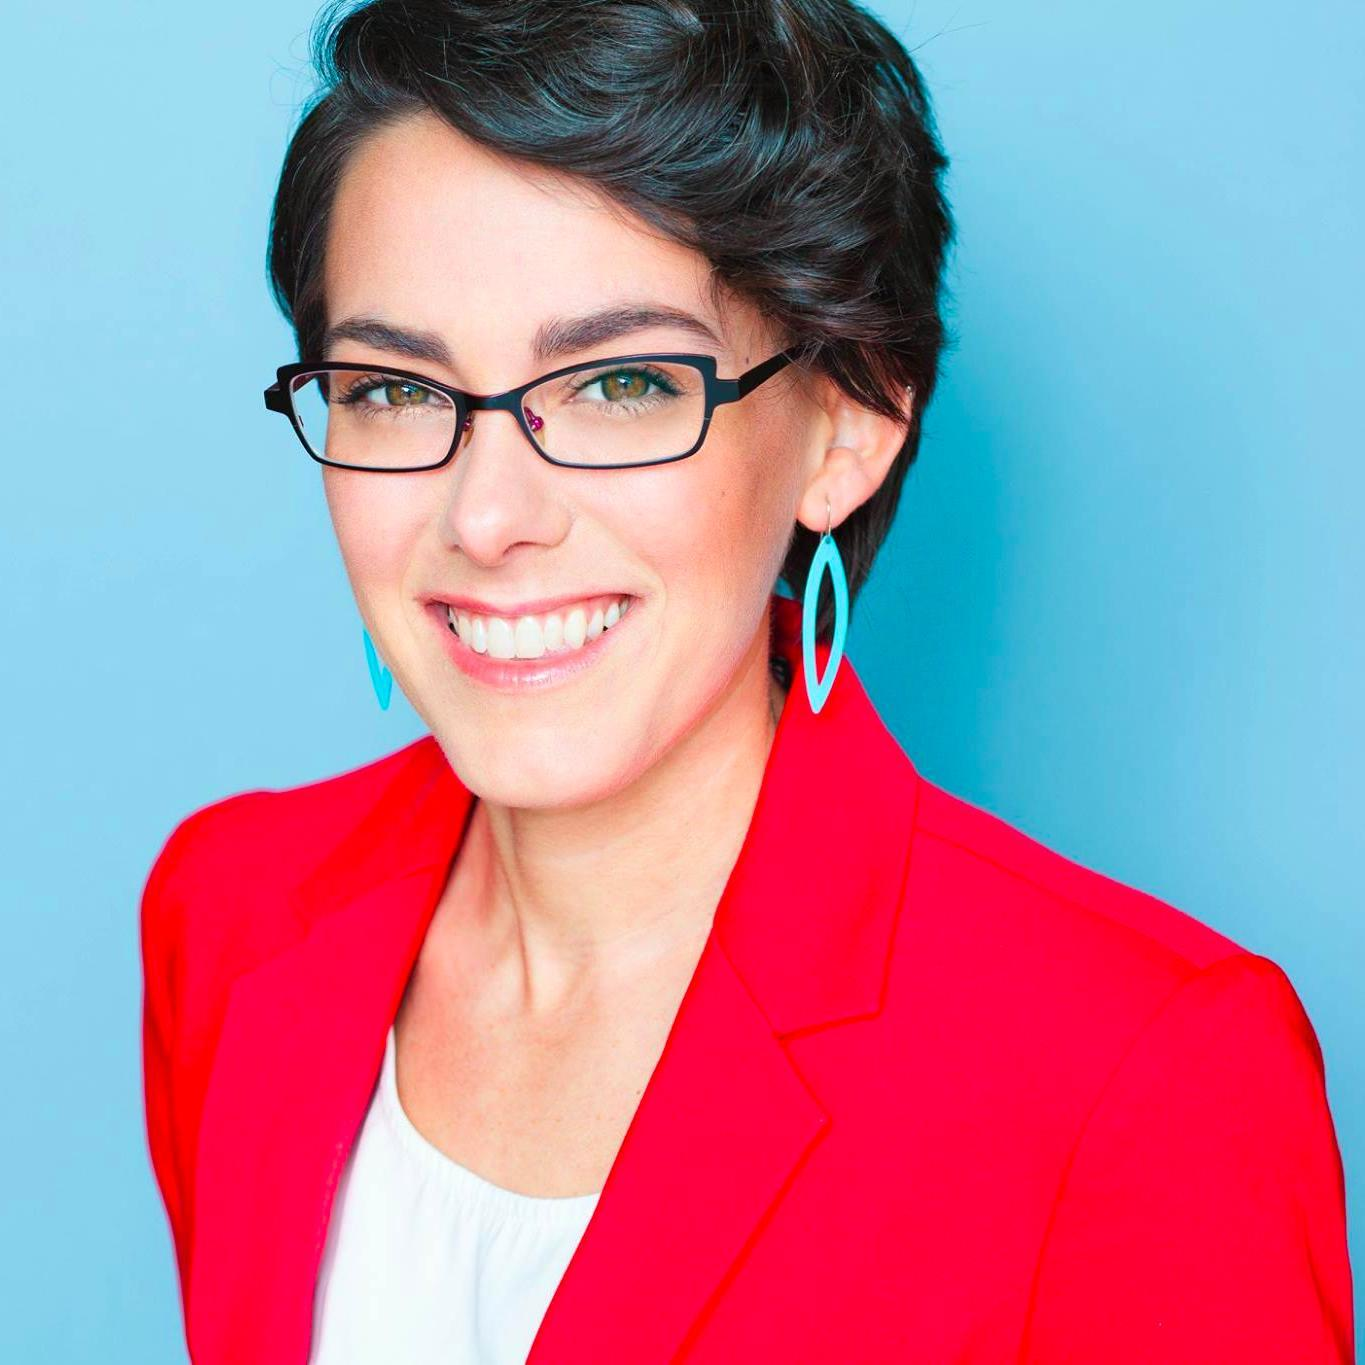 "Gina Helfrich, PhD, is co-founder of    recruitHER   , a women-owned recruiting & consulting firm connecting diverse talent with opportunities in the tech industry. Gina is the former Director of the Harvard College Women's Center at Harvard University and earned her doctorate in philosophy and women's studies from Emory University. She has taught at the university level on diversity and inclusion, including an applied ethics seminar at Harvard, ""Gender, Race, and Ethics in the 21st Century."" Gina is also founder of    Feminist Hack ATX   , a community organization for people of all genders to work together towards a more women-friendly technology scene in Austin."